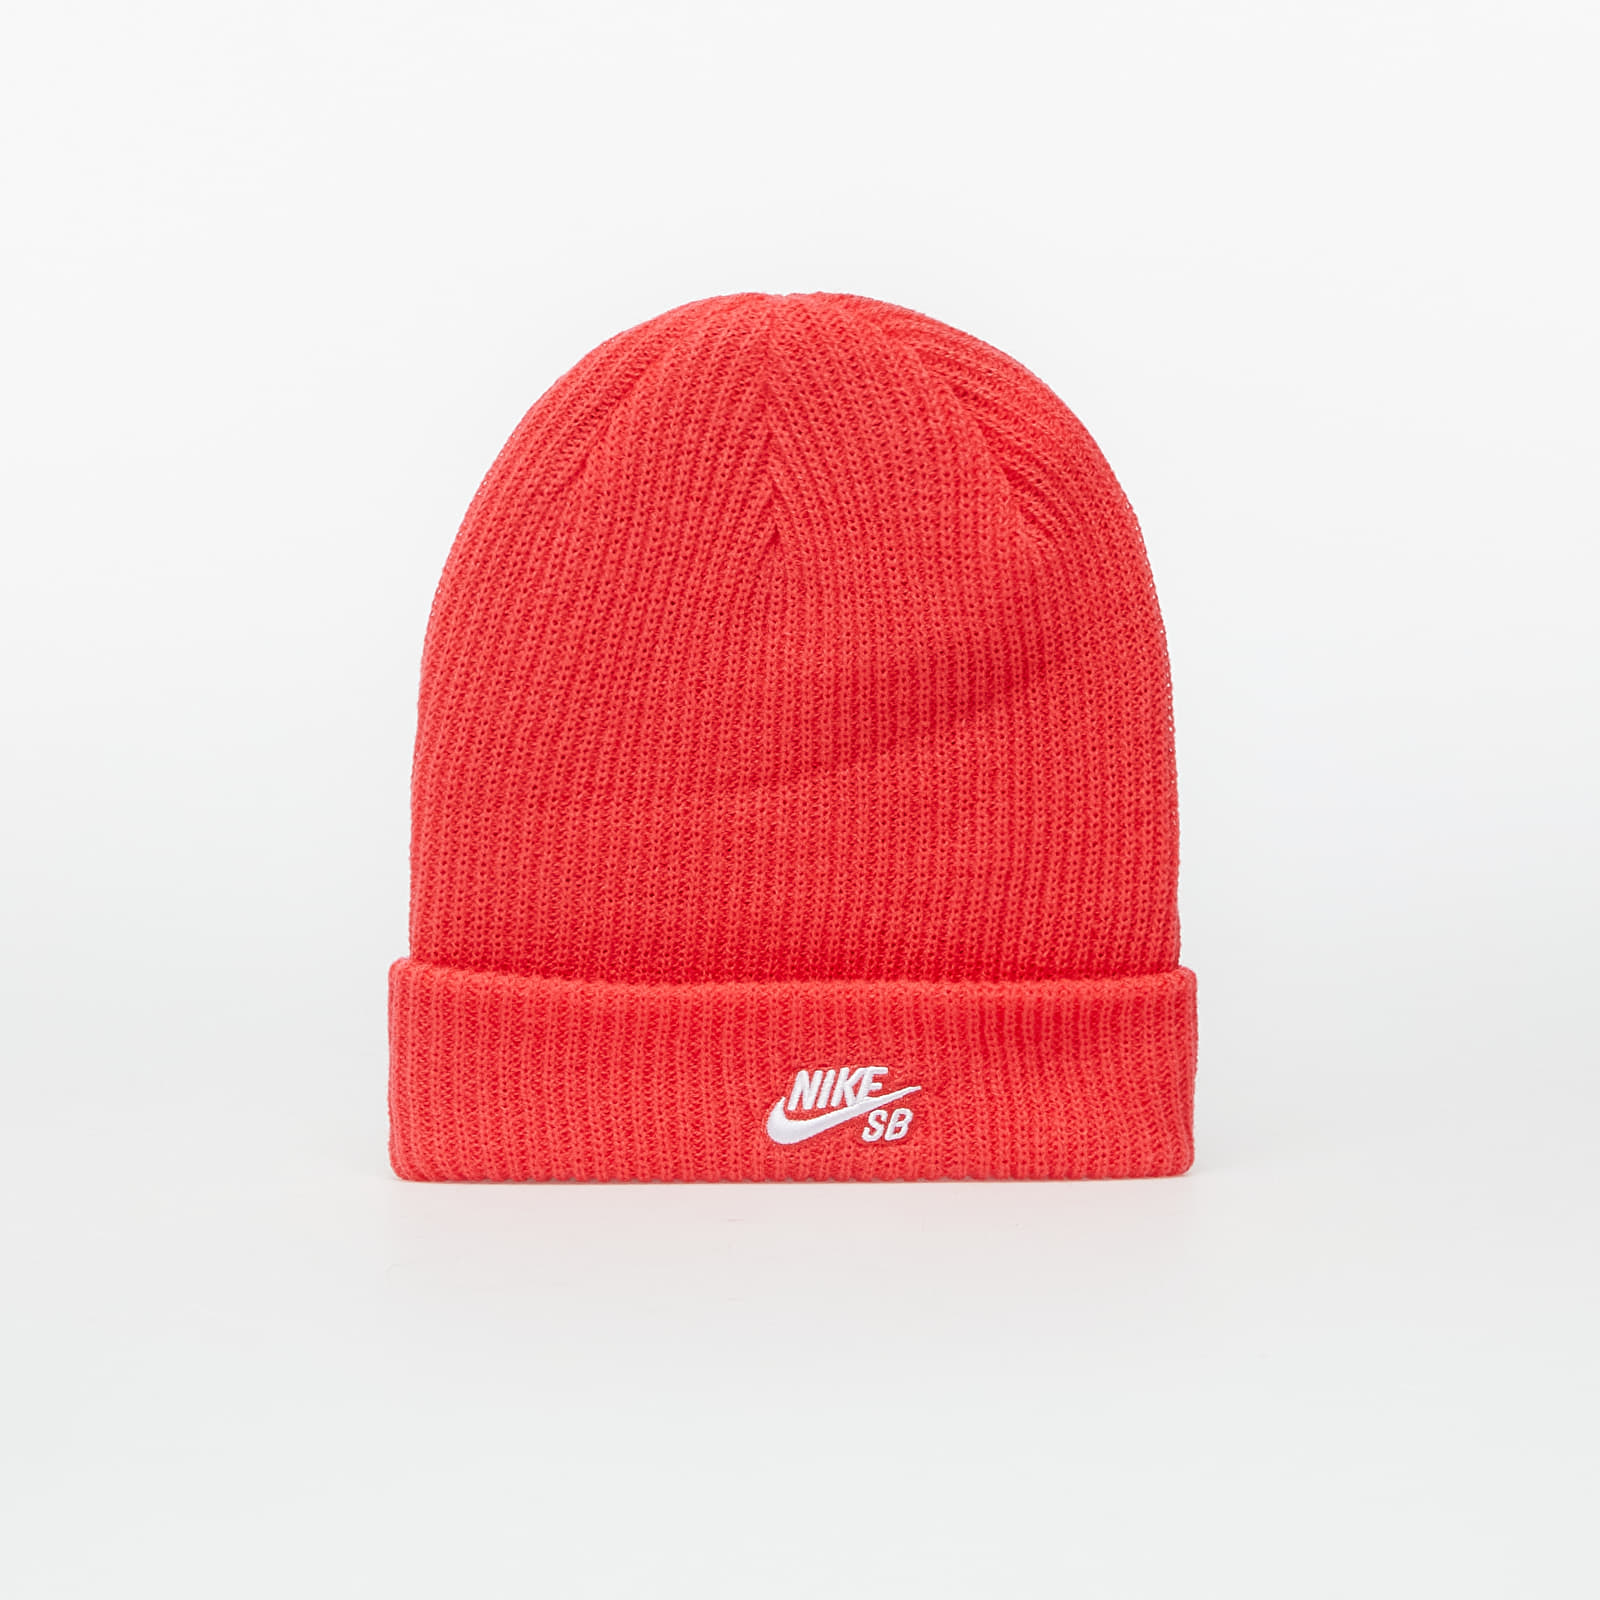 Hats Nike Fisherman Beanie Lt Fusion Red/ White